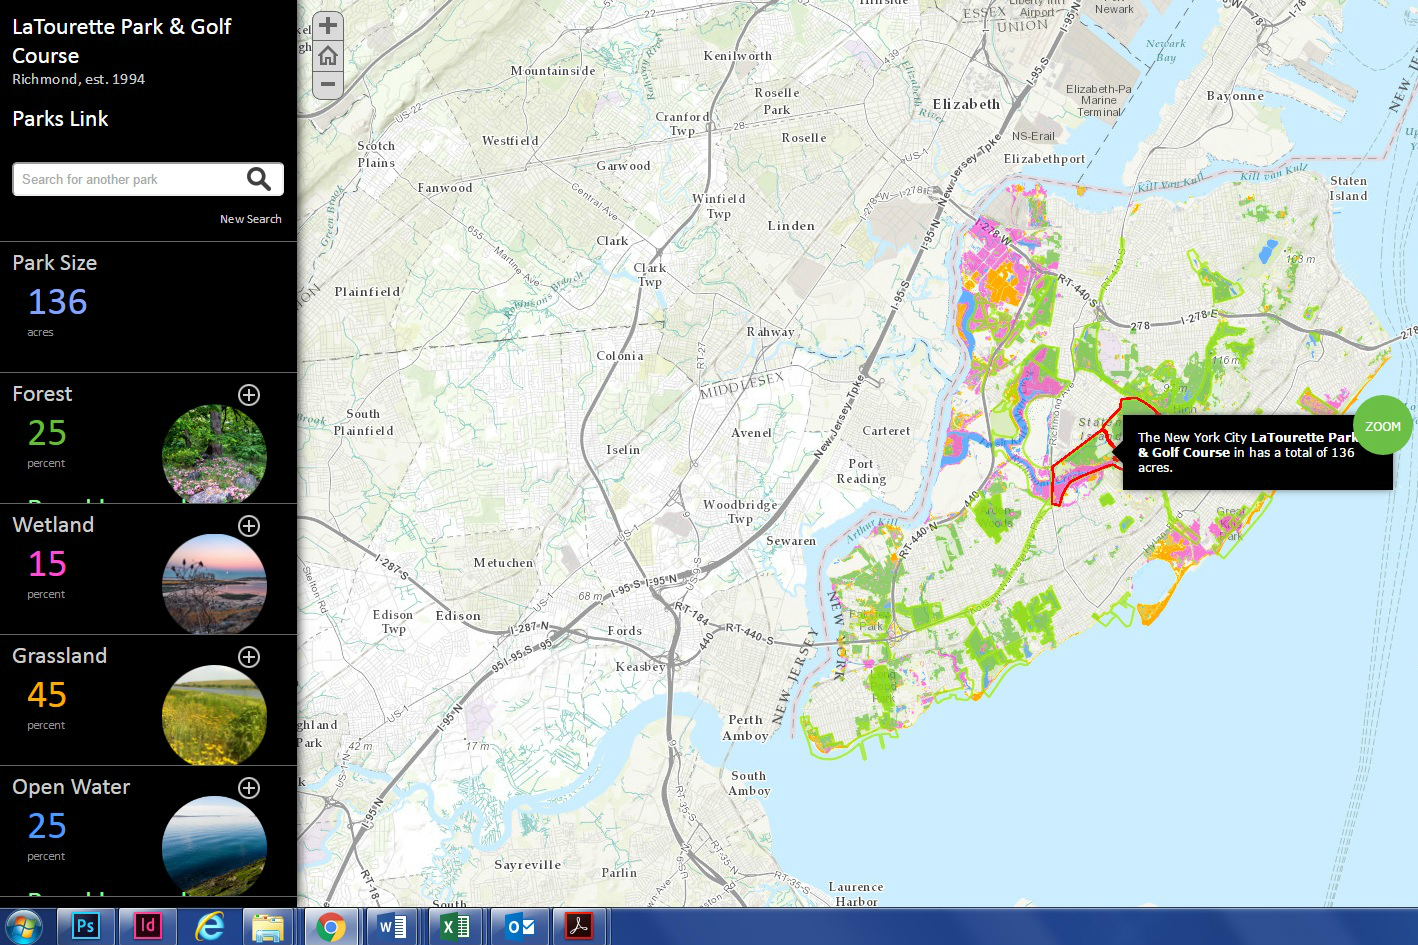 Really spectacular  interactive map  of natural areas in New York City, courtesy of The Natural Areas Conservancy. Hover and click to discover the types of plant and animal species, including those that are rare or threatened, in 51 different city-owned parks.The Natural Areas Conservancy works in partnership with NYC Parks to champion 20,000 acres of city-owned forests and wetlands for the benefit and enjoyment of all. They promote nature's diversity and resilience across the five boroughs.  Click through for website.